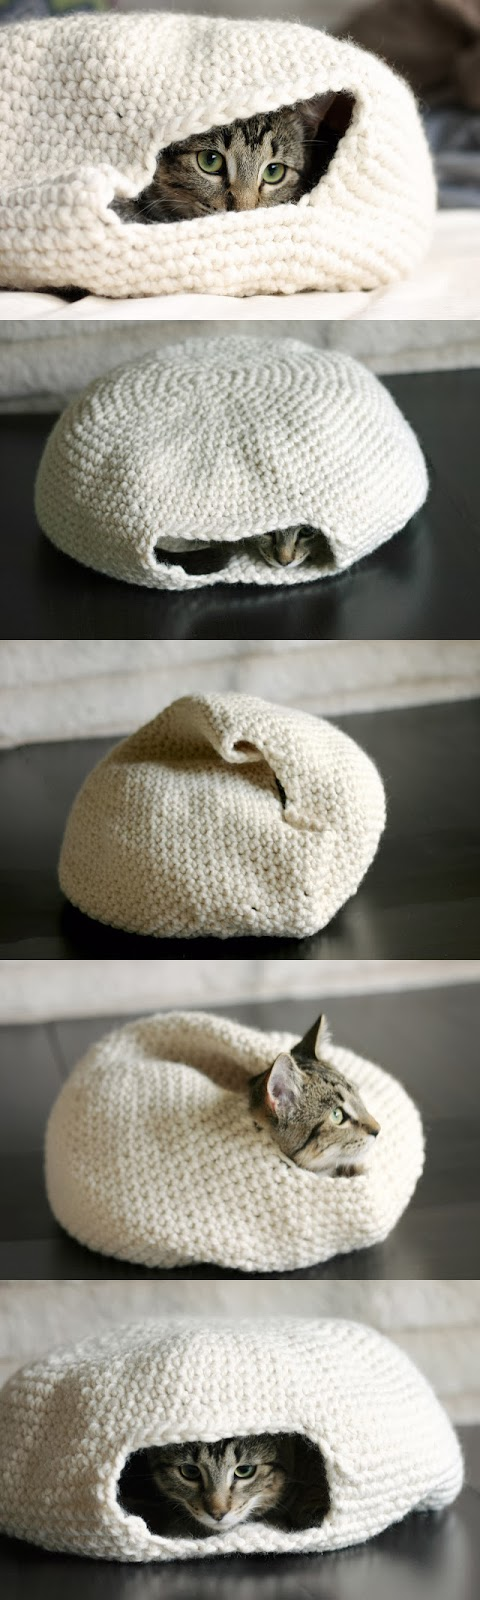 25 DIY Coffee Cup Cozy Tutorials And Patterns - Shelterness | 1600x480